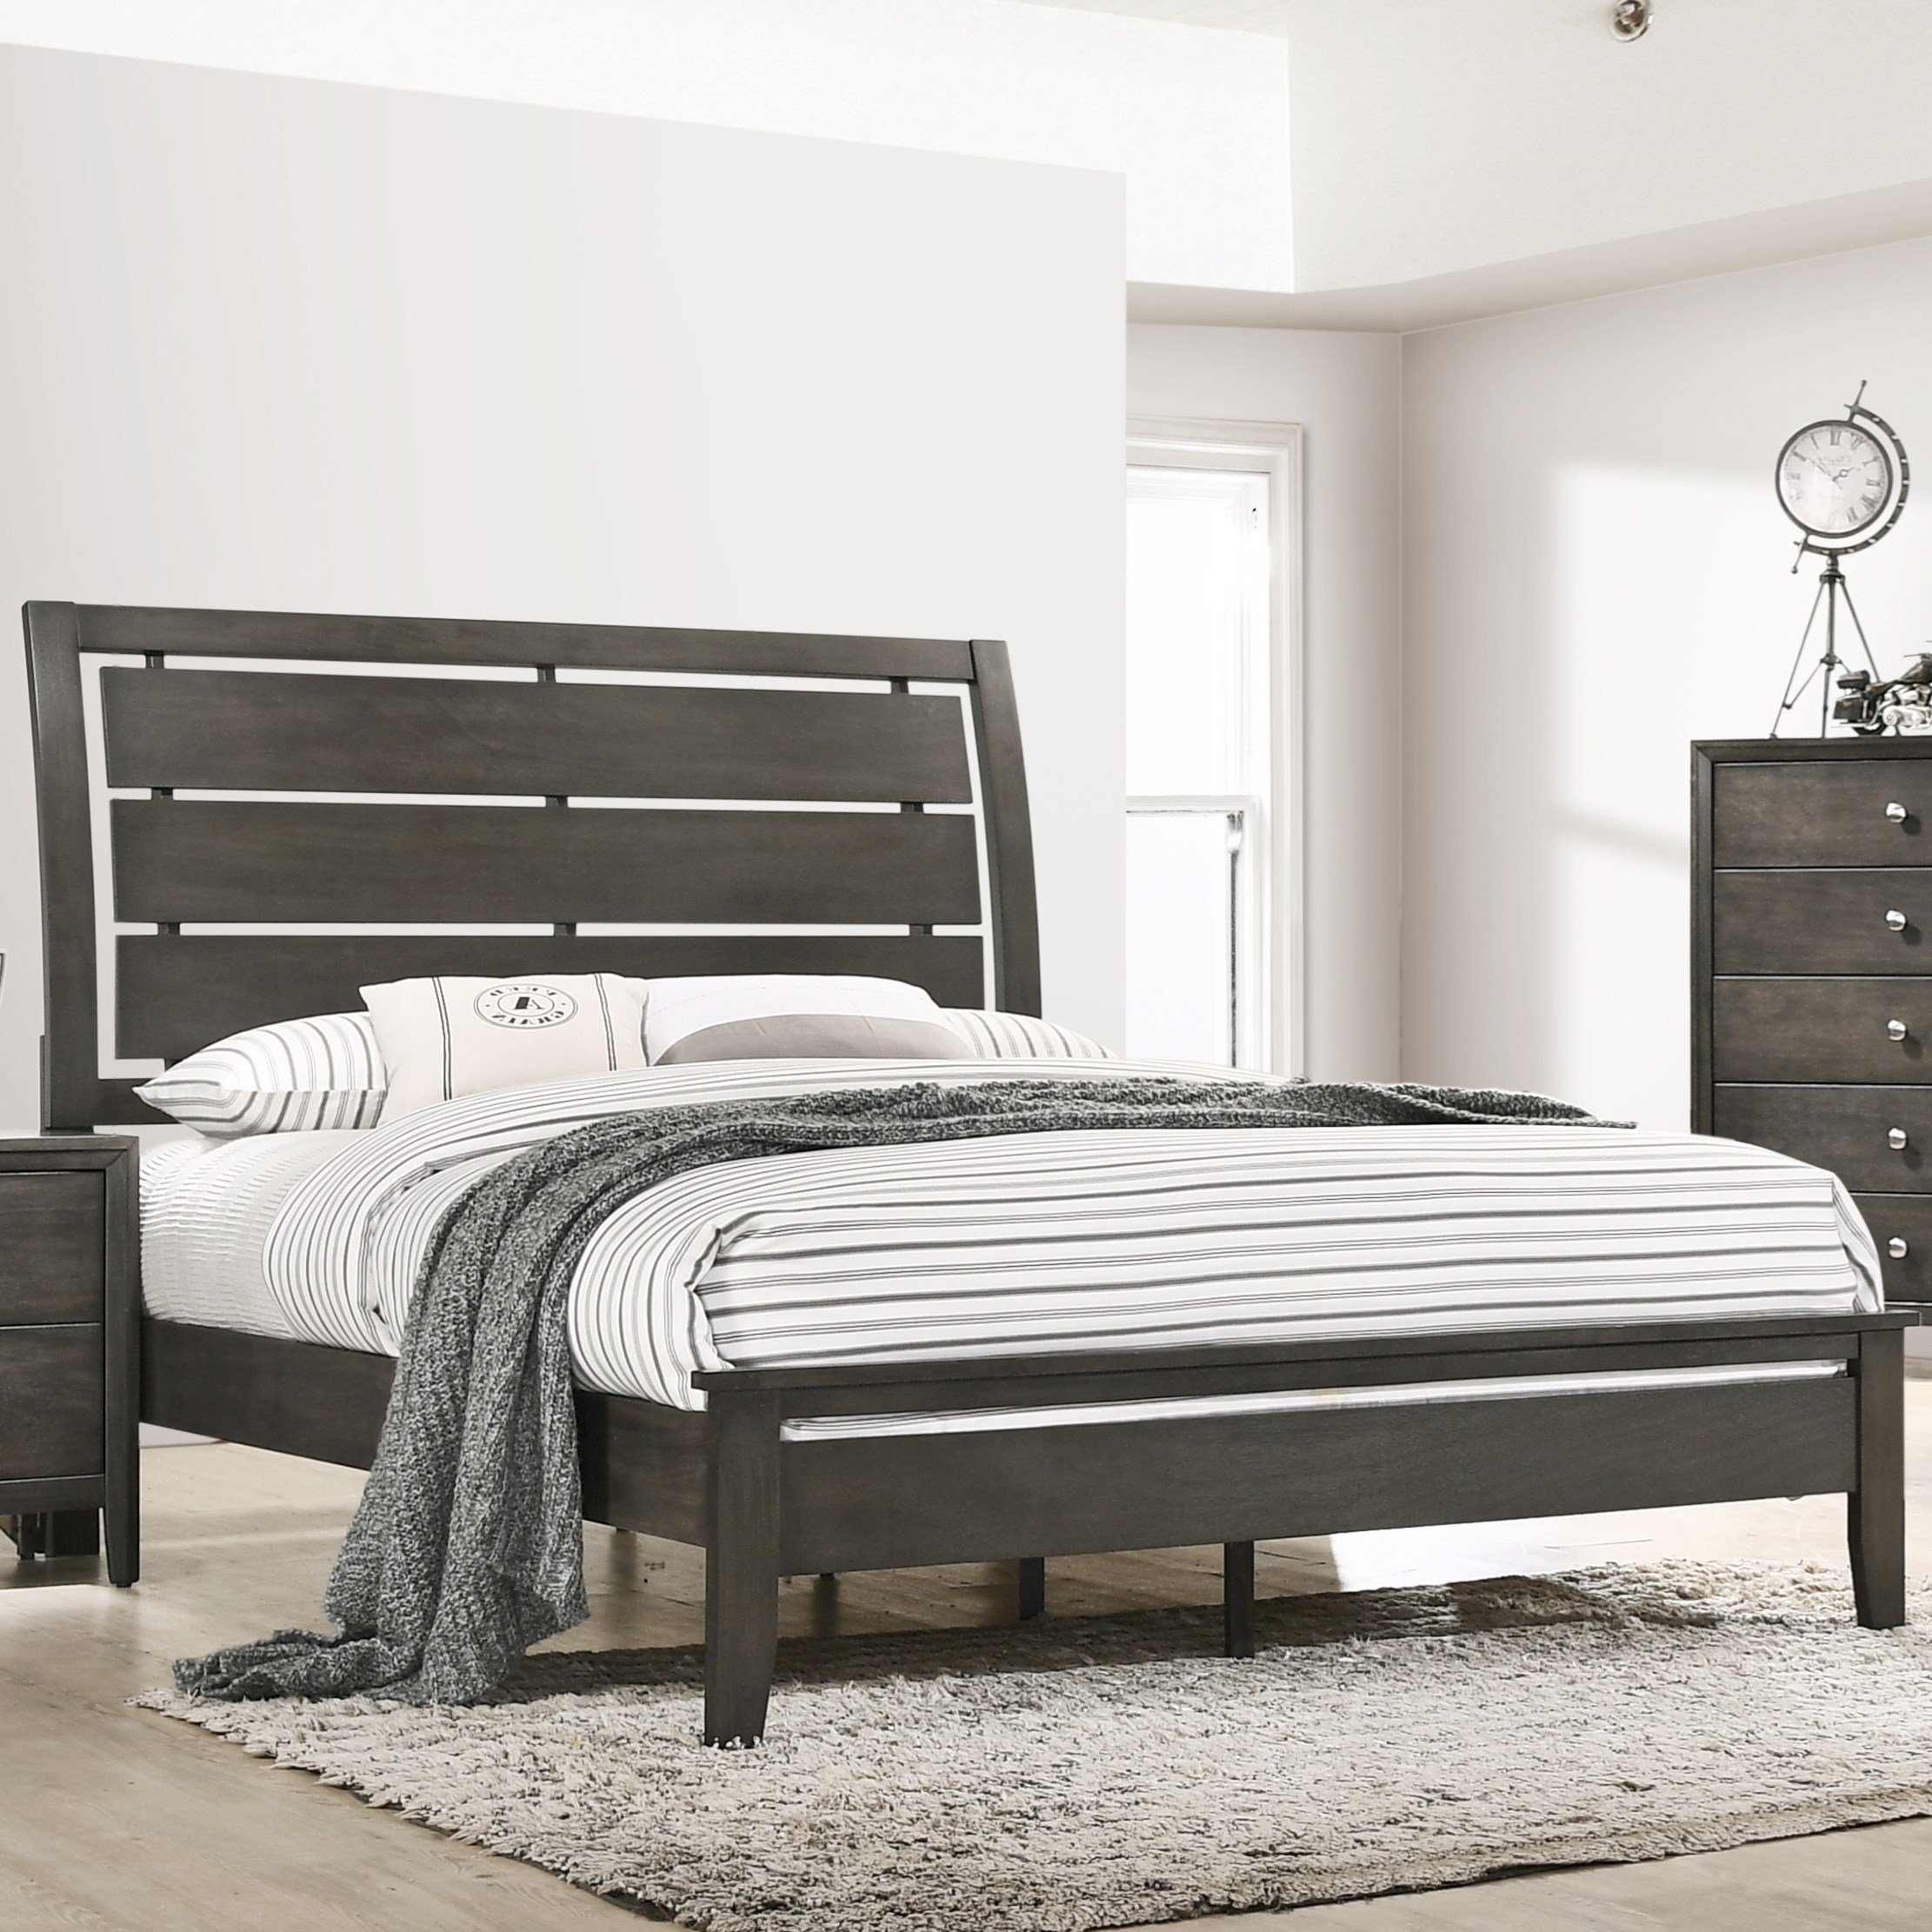 Grant Twin Bed by Lane at Esprit Decor Home Furnishings